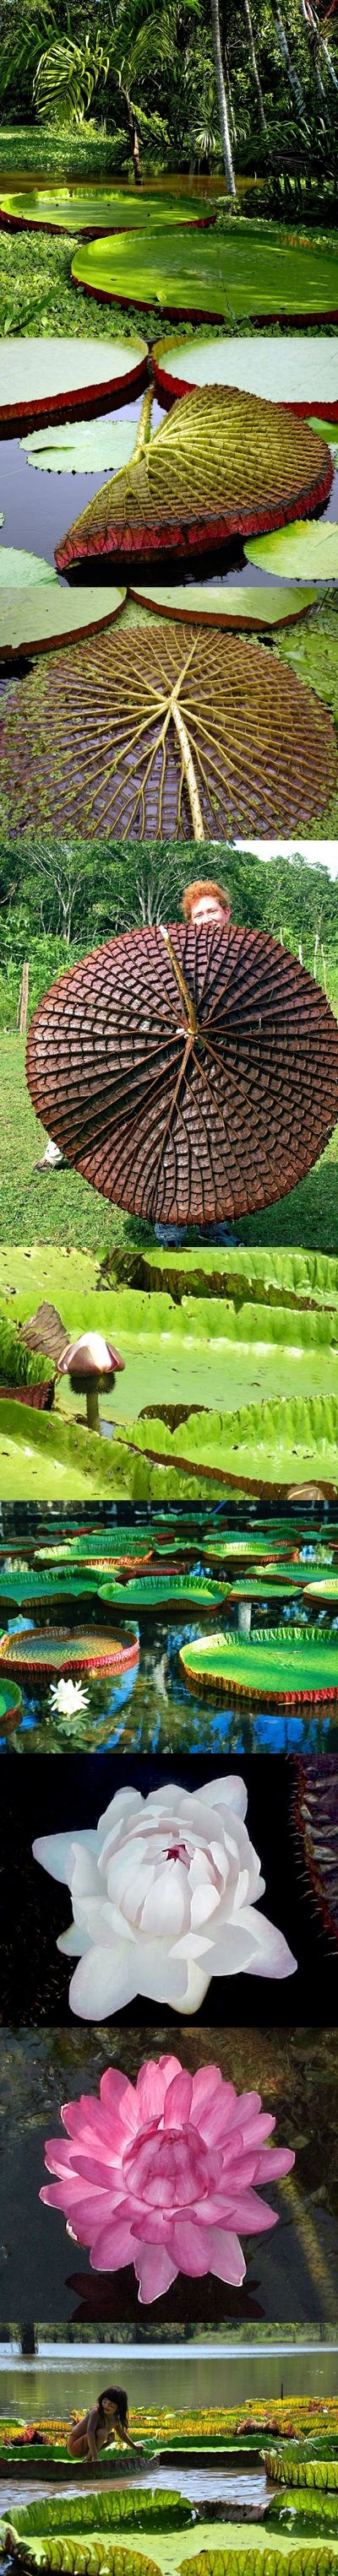 Amazon huge lily pads